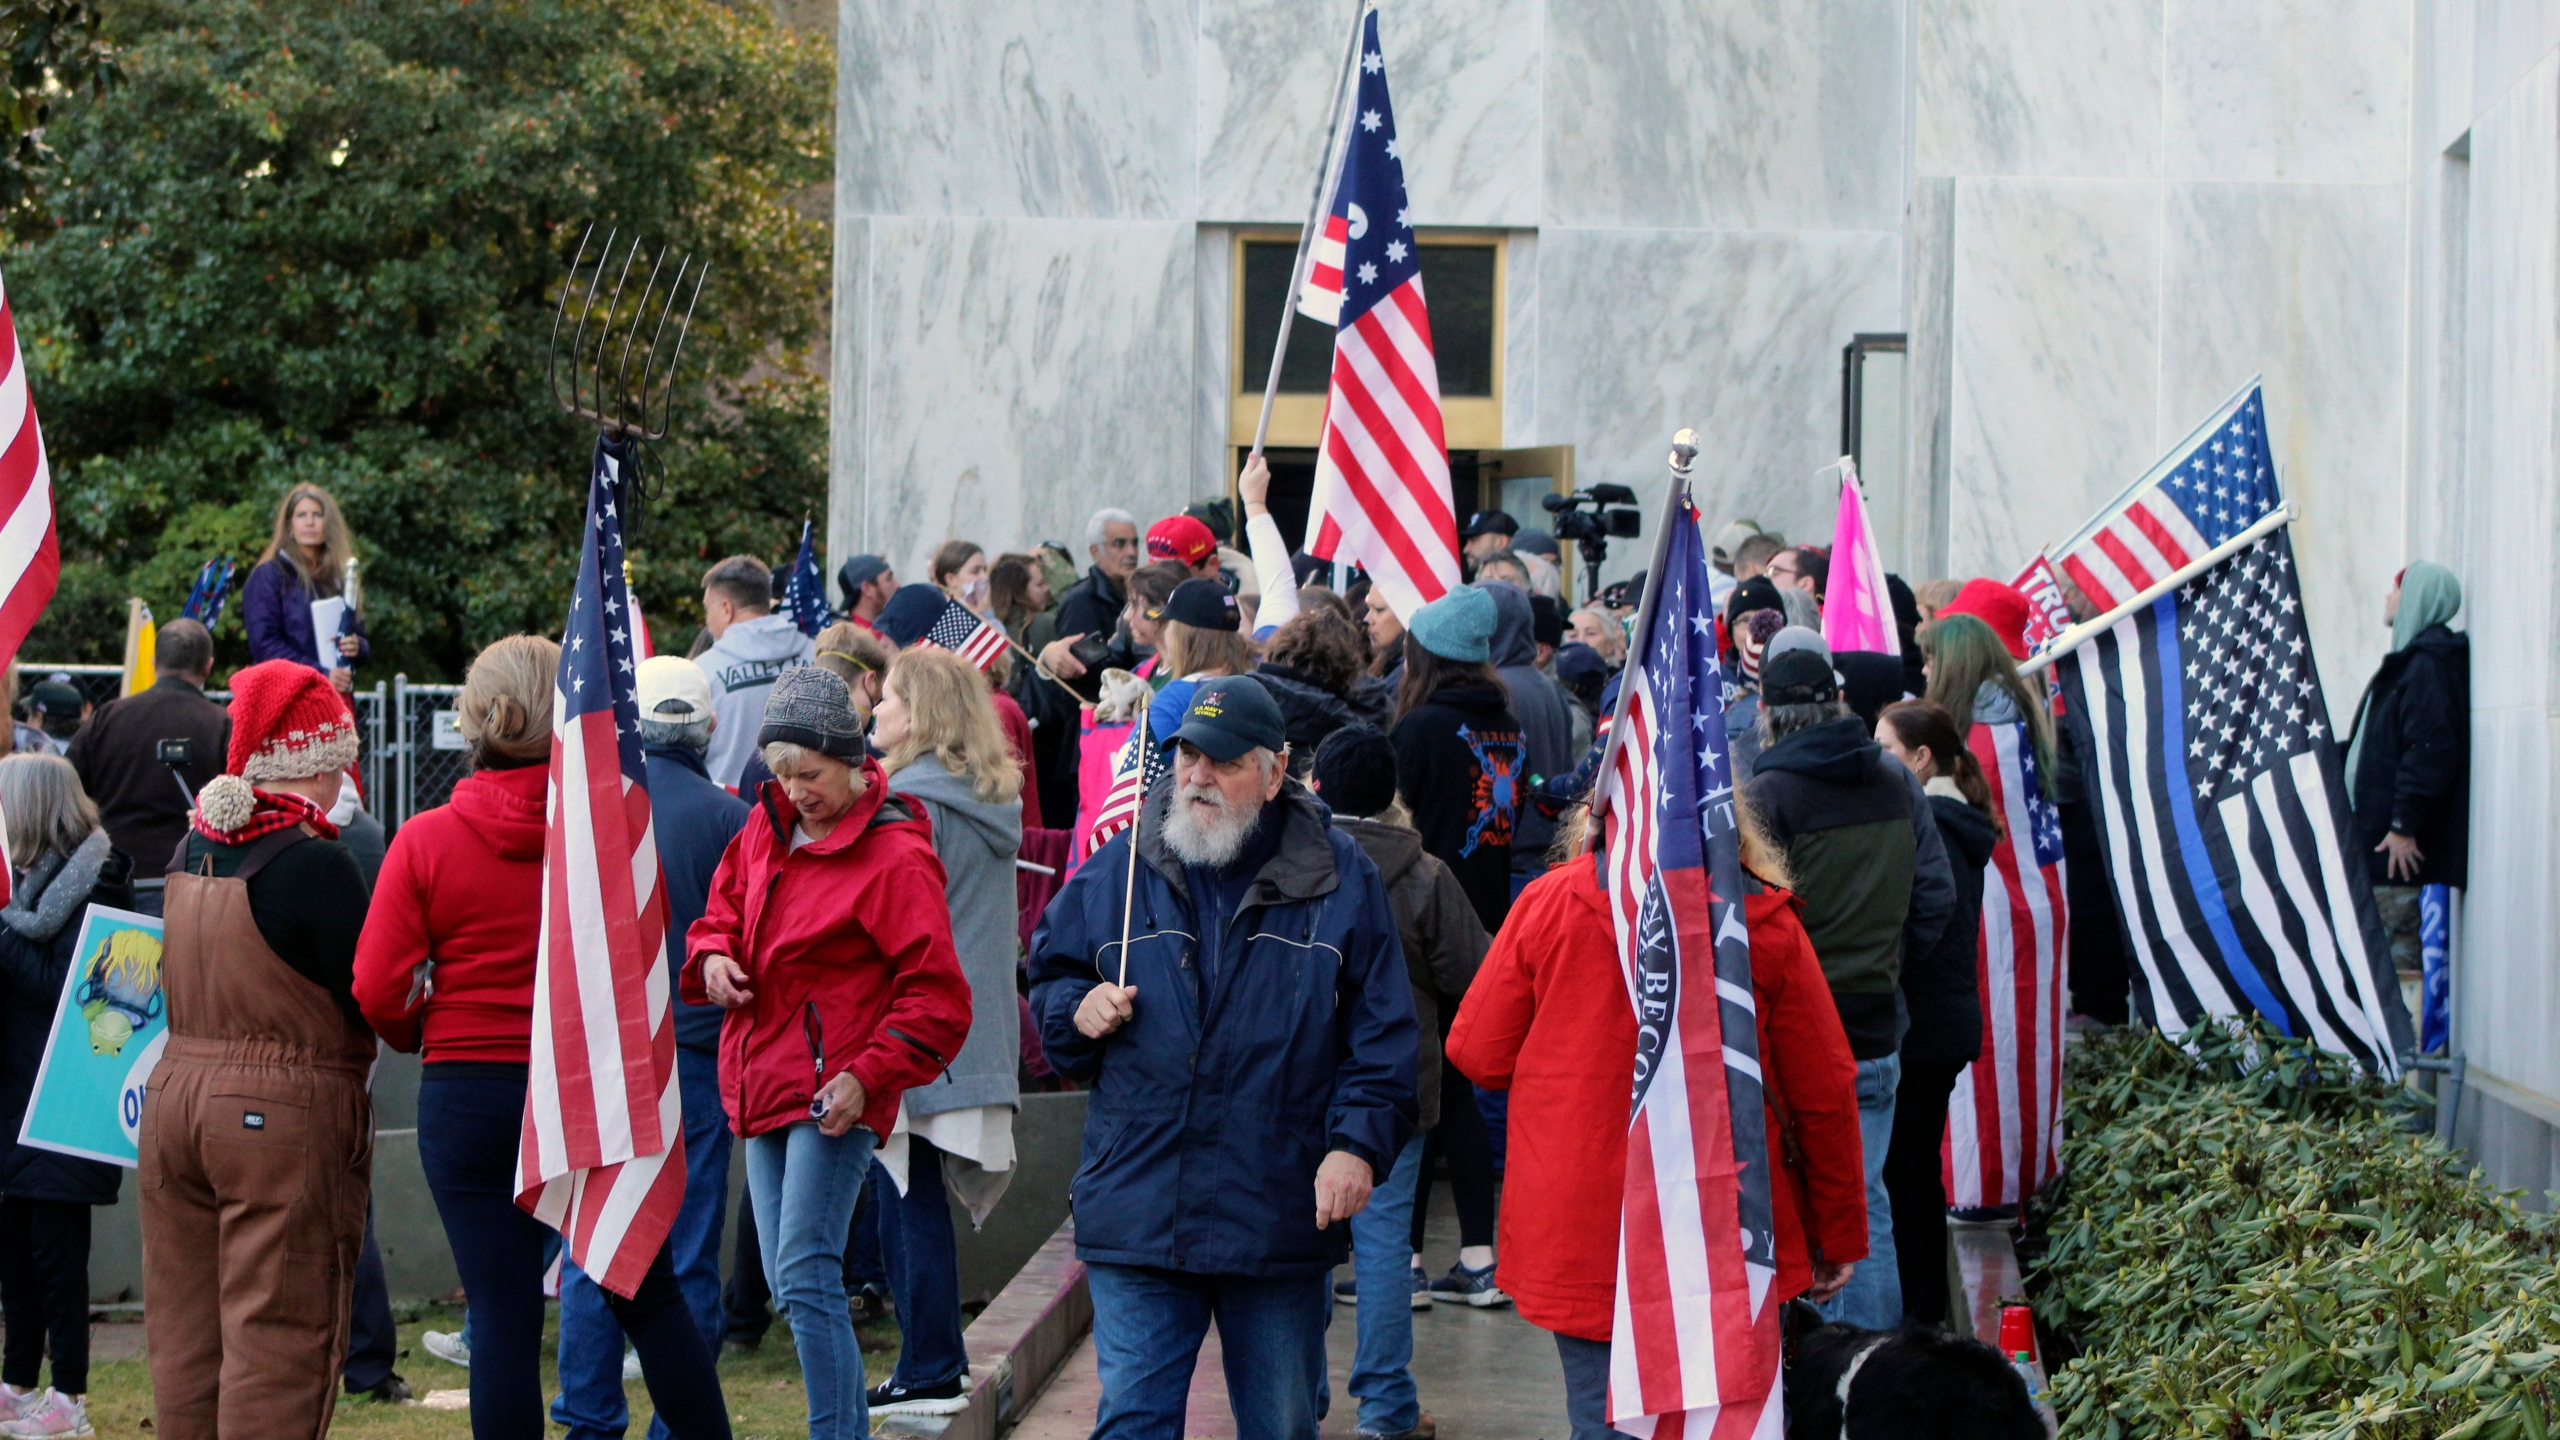 In this Dec. 21, 2020, file photo, pro-Trump and anti-mask demonstrators hold a rally outside the Oregon State Capitol as legislators meet for an emergency session in Salem, Ore. Prosecutors leveled two criminal charges Friday, April 30, 2021, against a Republican member of the Oregon House of Representatives who let far-right rioters into the state Capitol that day. Rep. Mike Nearman was charged with official misconduct in the first degree and criminal trespass in the second degree. (AP Photo/Andrew Selsky, File)